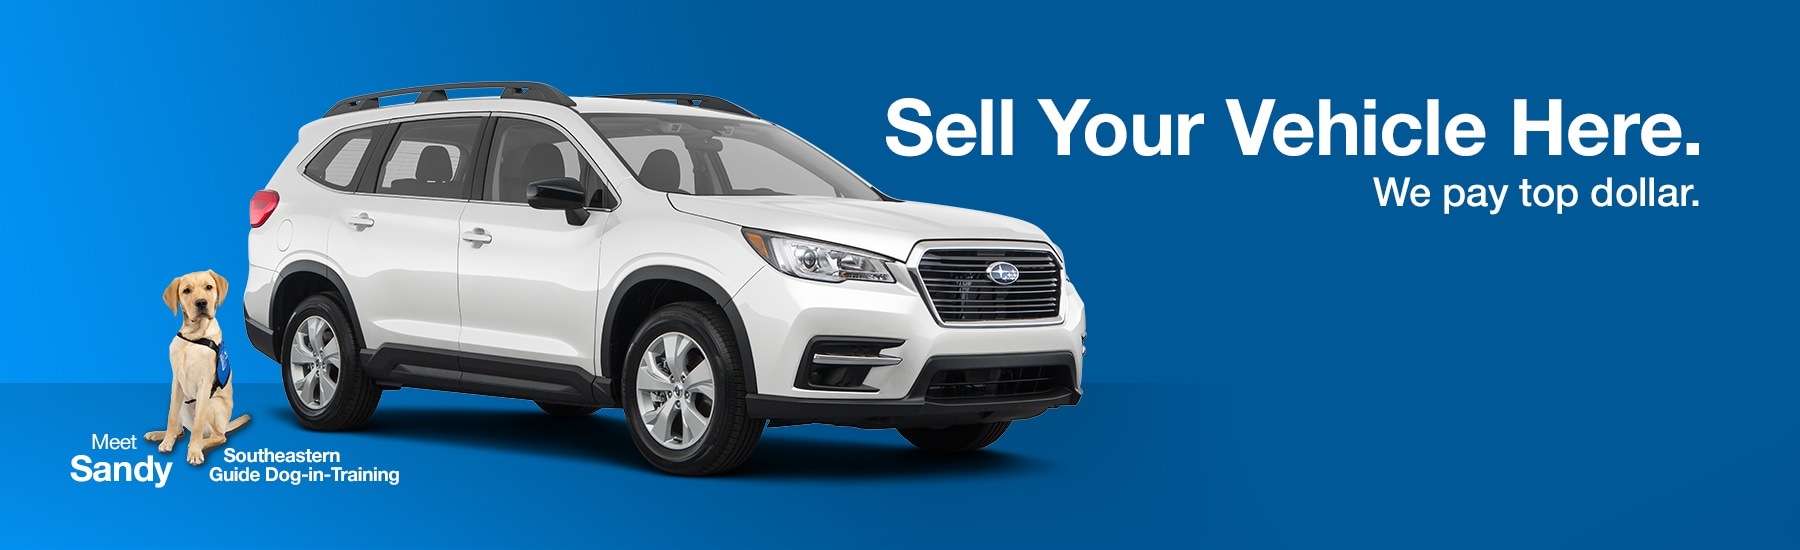 Sell Your Vehicle at Reeves Subaru